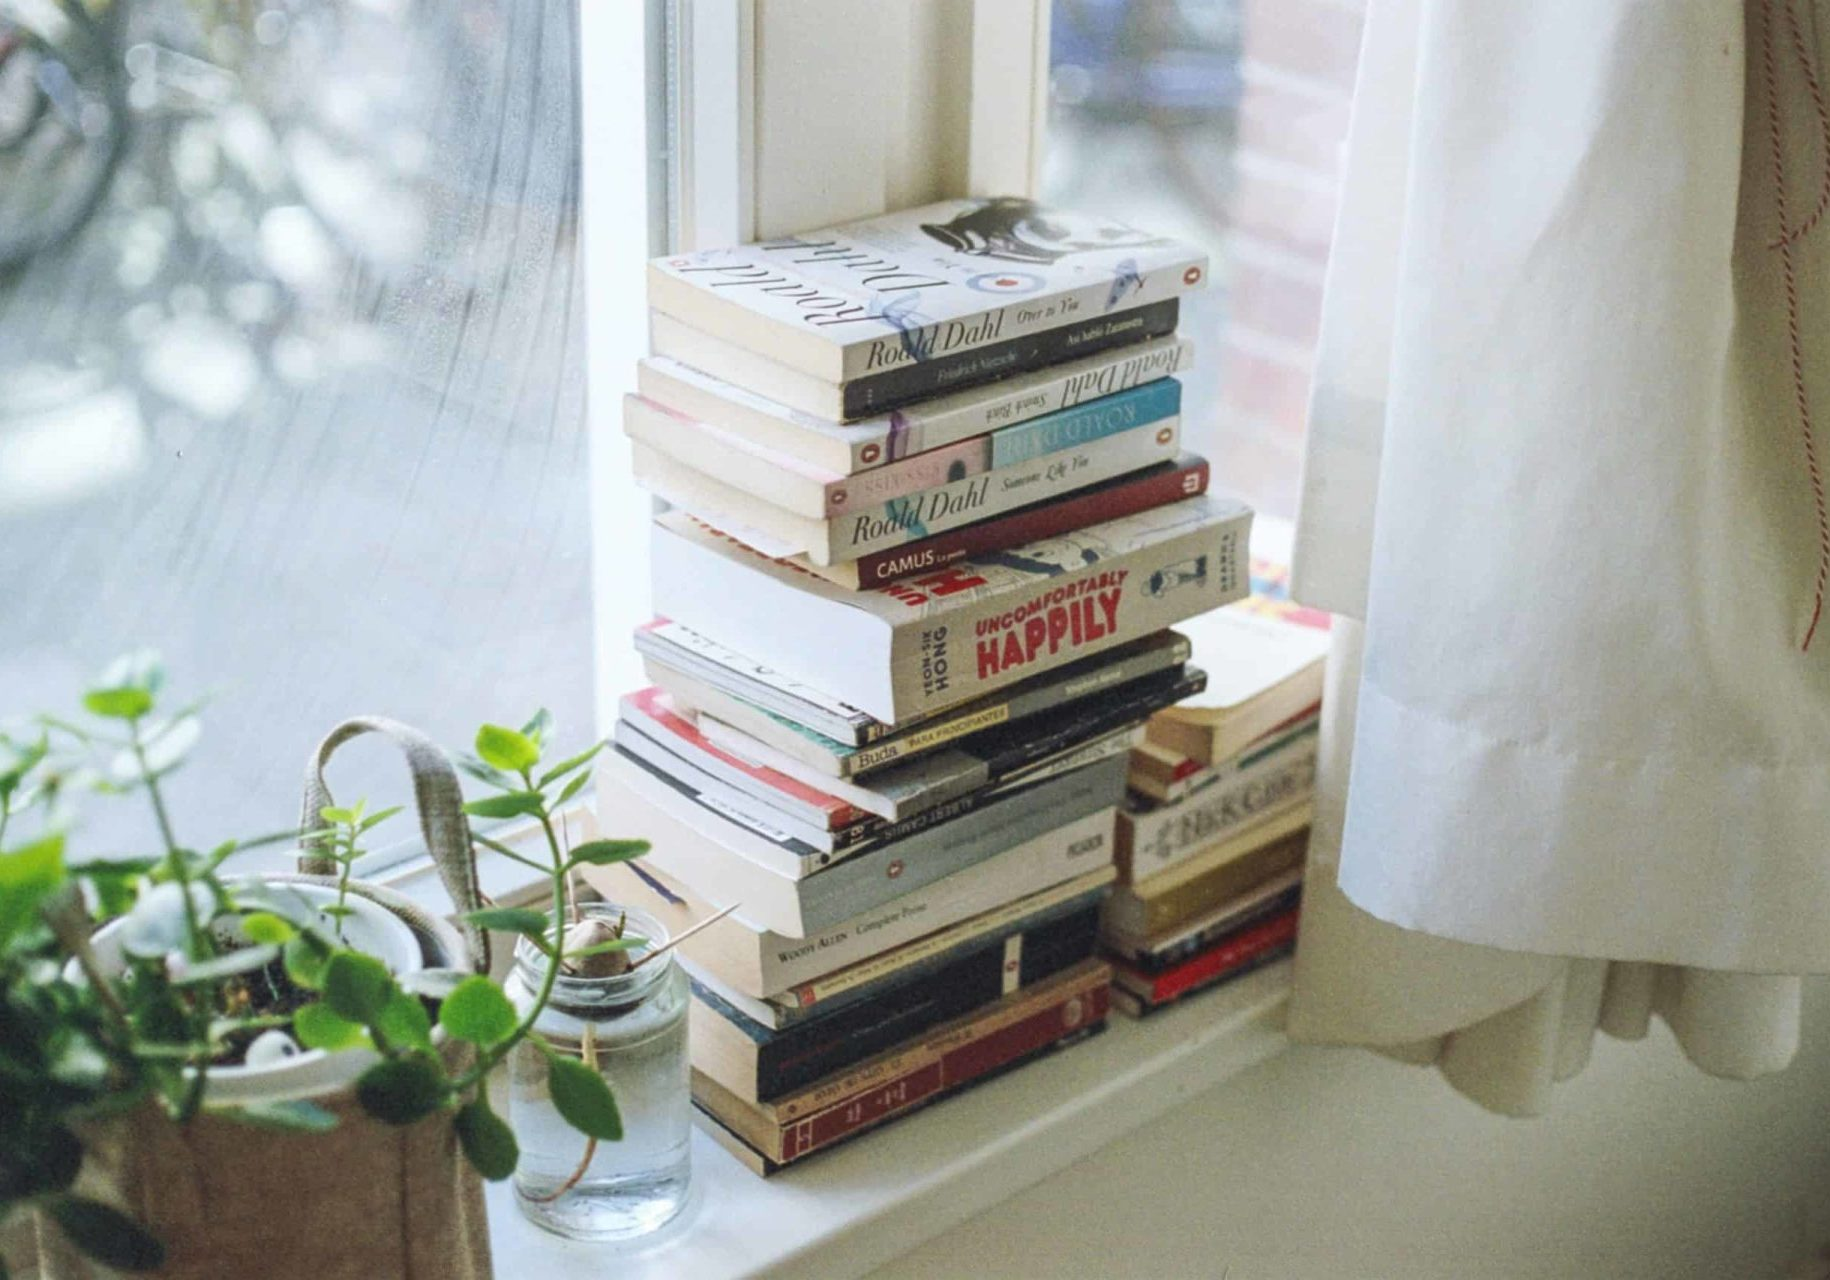 a pile of books on a window sill